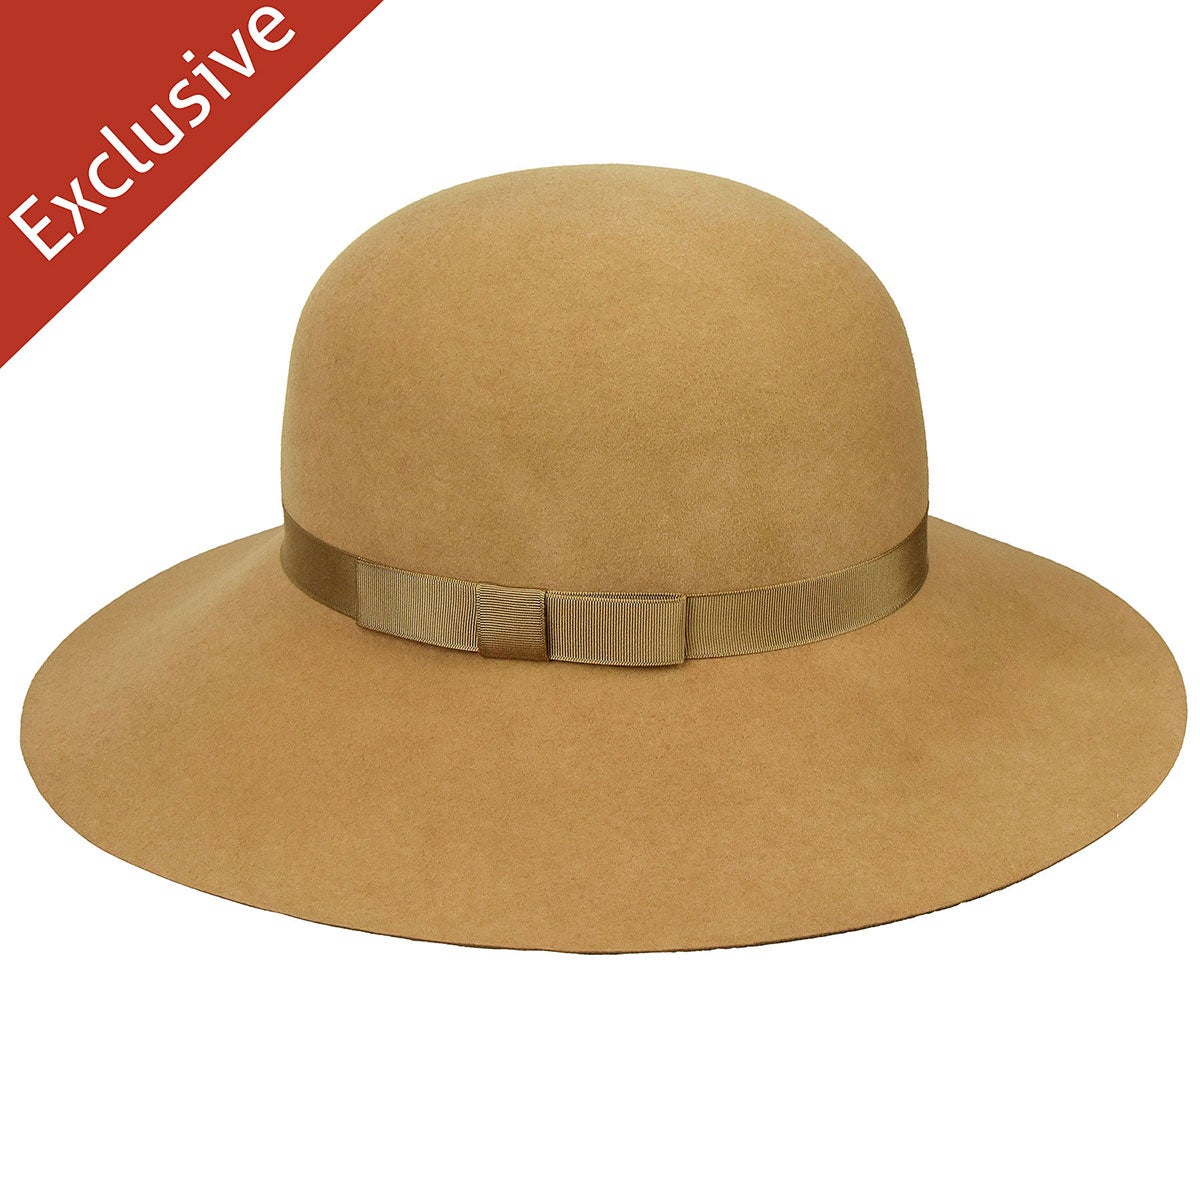 Hats.com Abby Wide Brim Hat in Camel